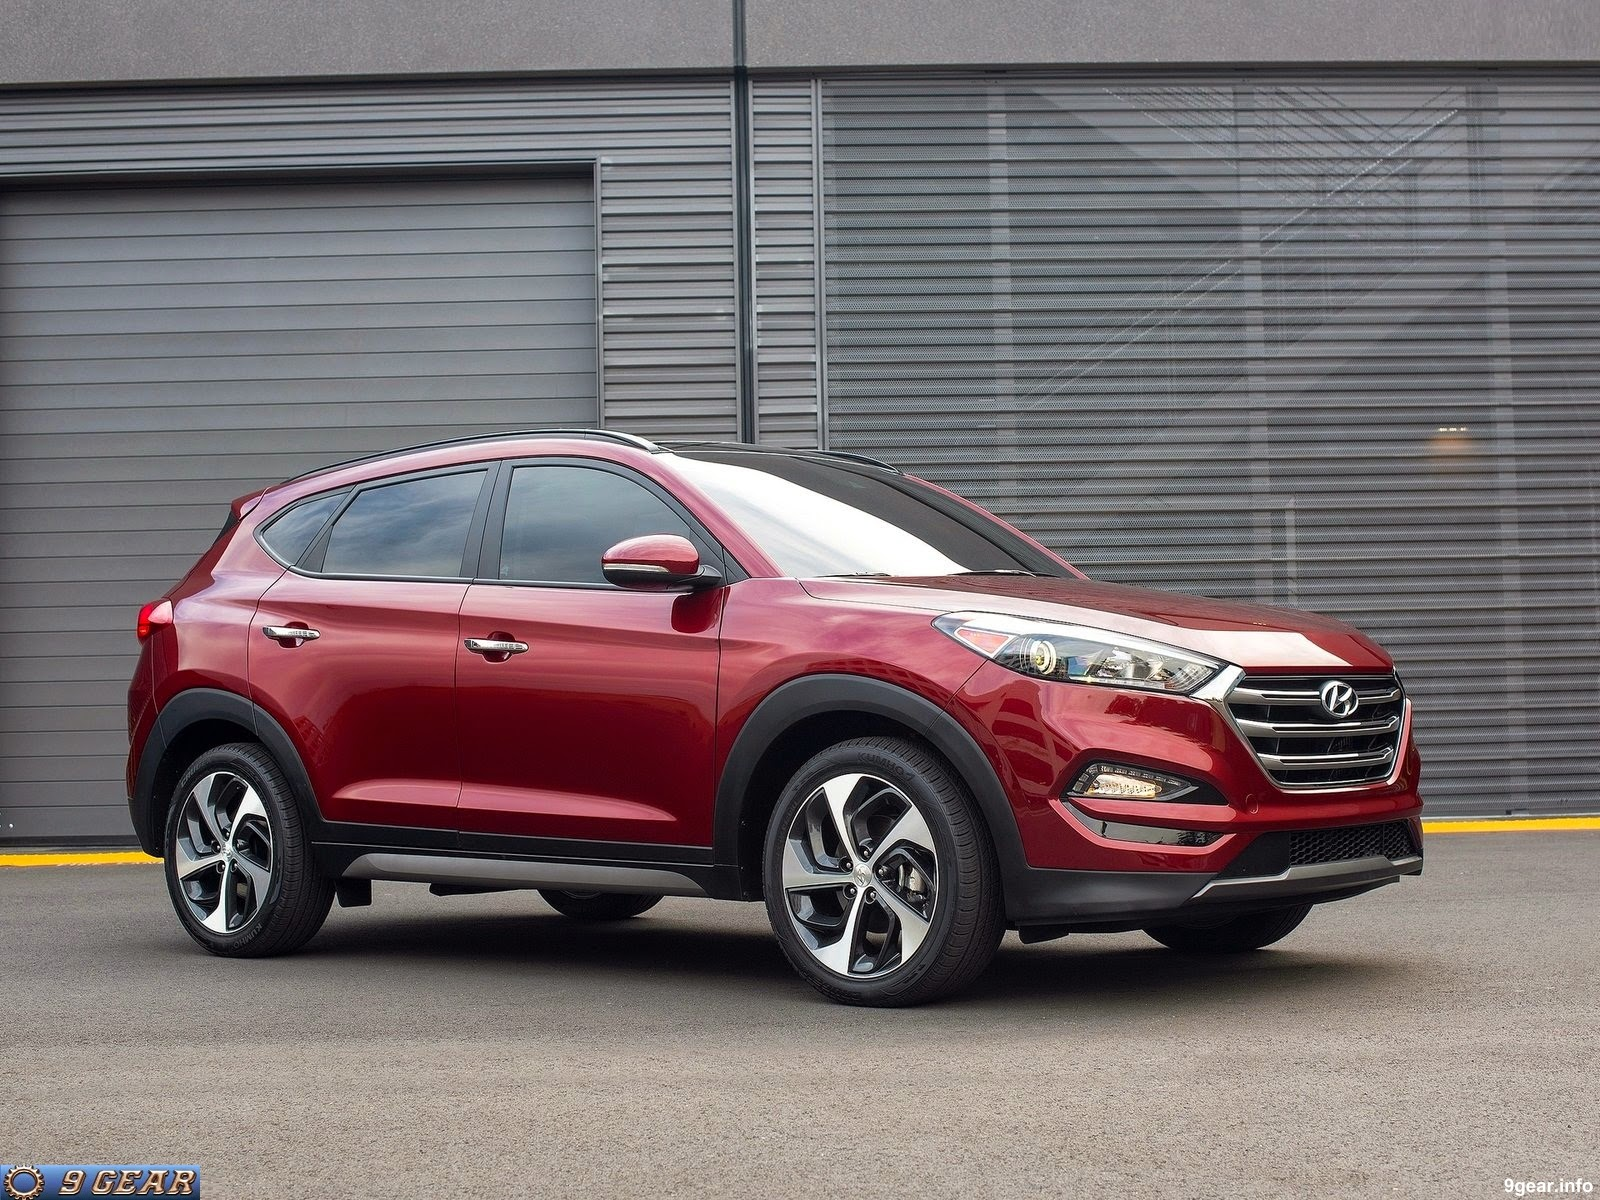 Car Reviews New Car Pictures For 2019 2020 2016 Hyundai Tucson Specs